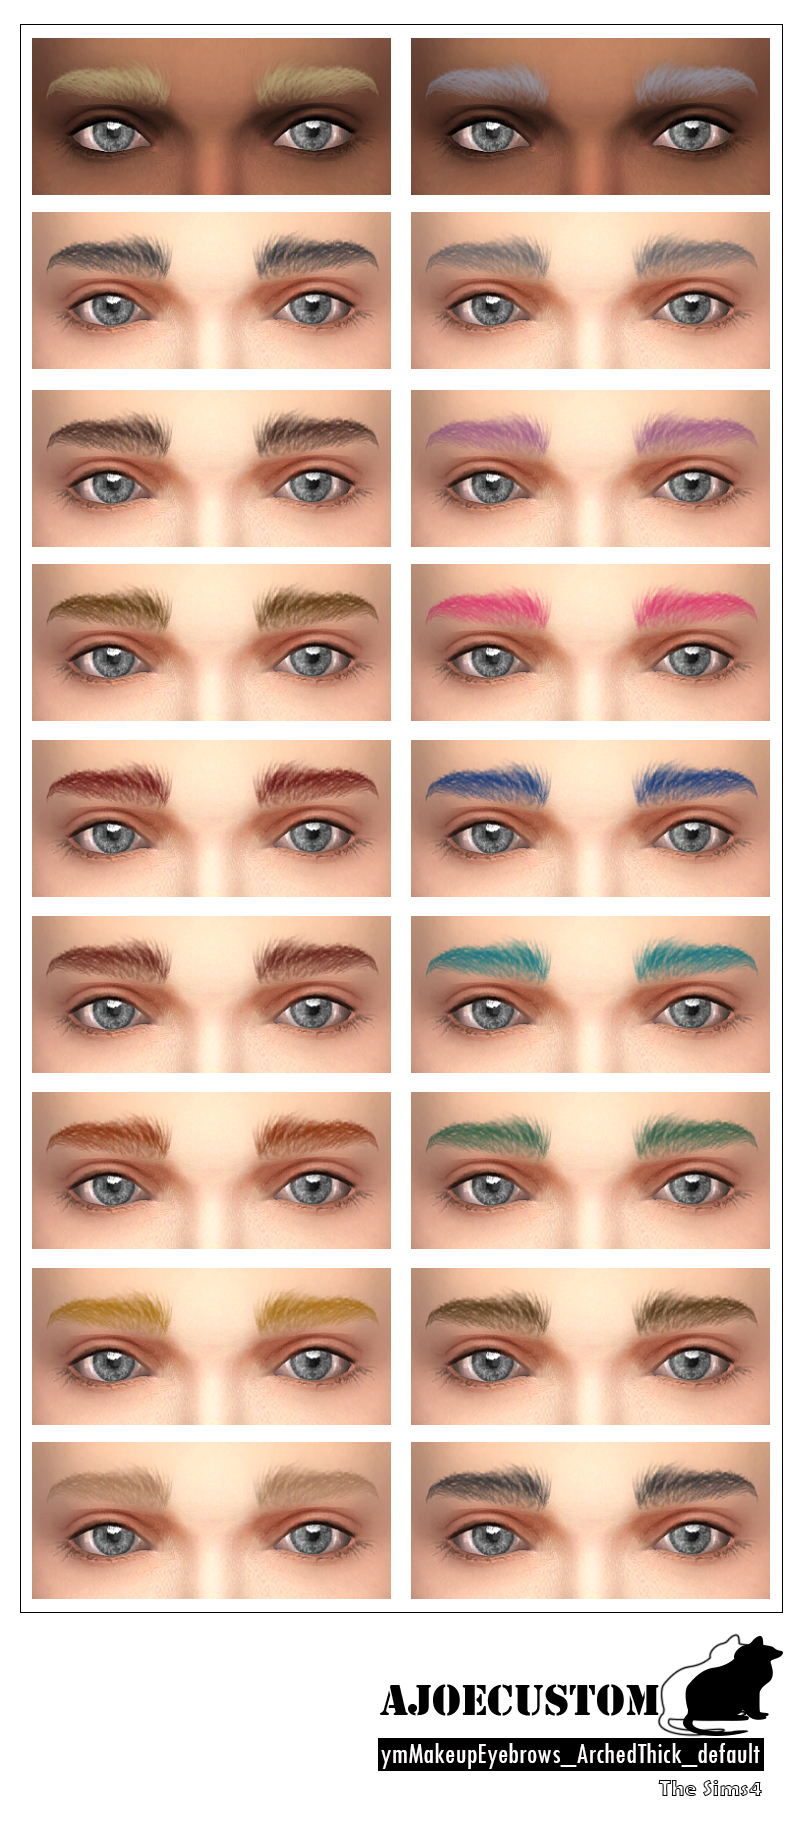 Eyebrows Arched Thick default for Males by AJoeCustom